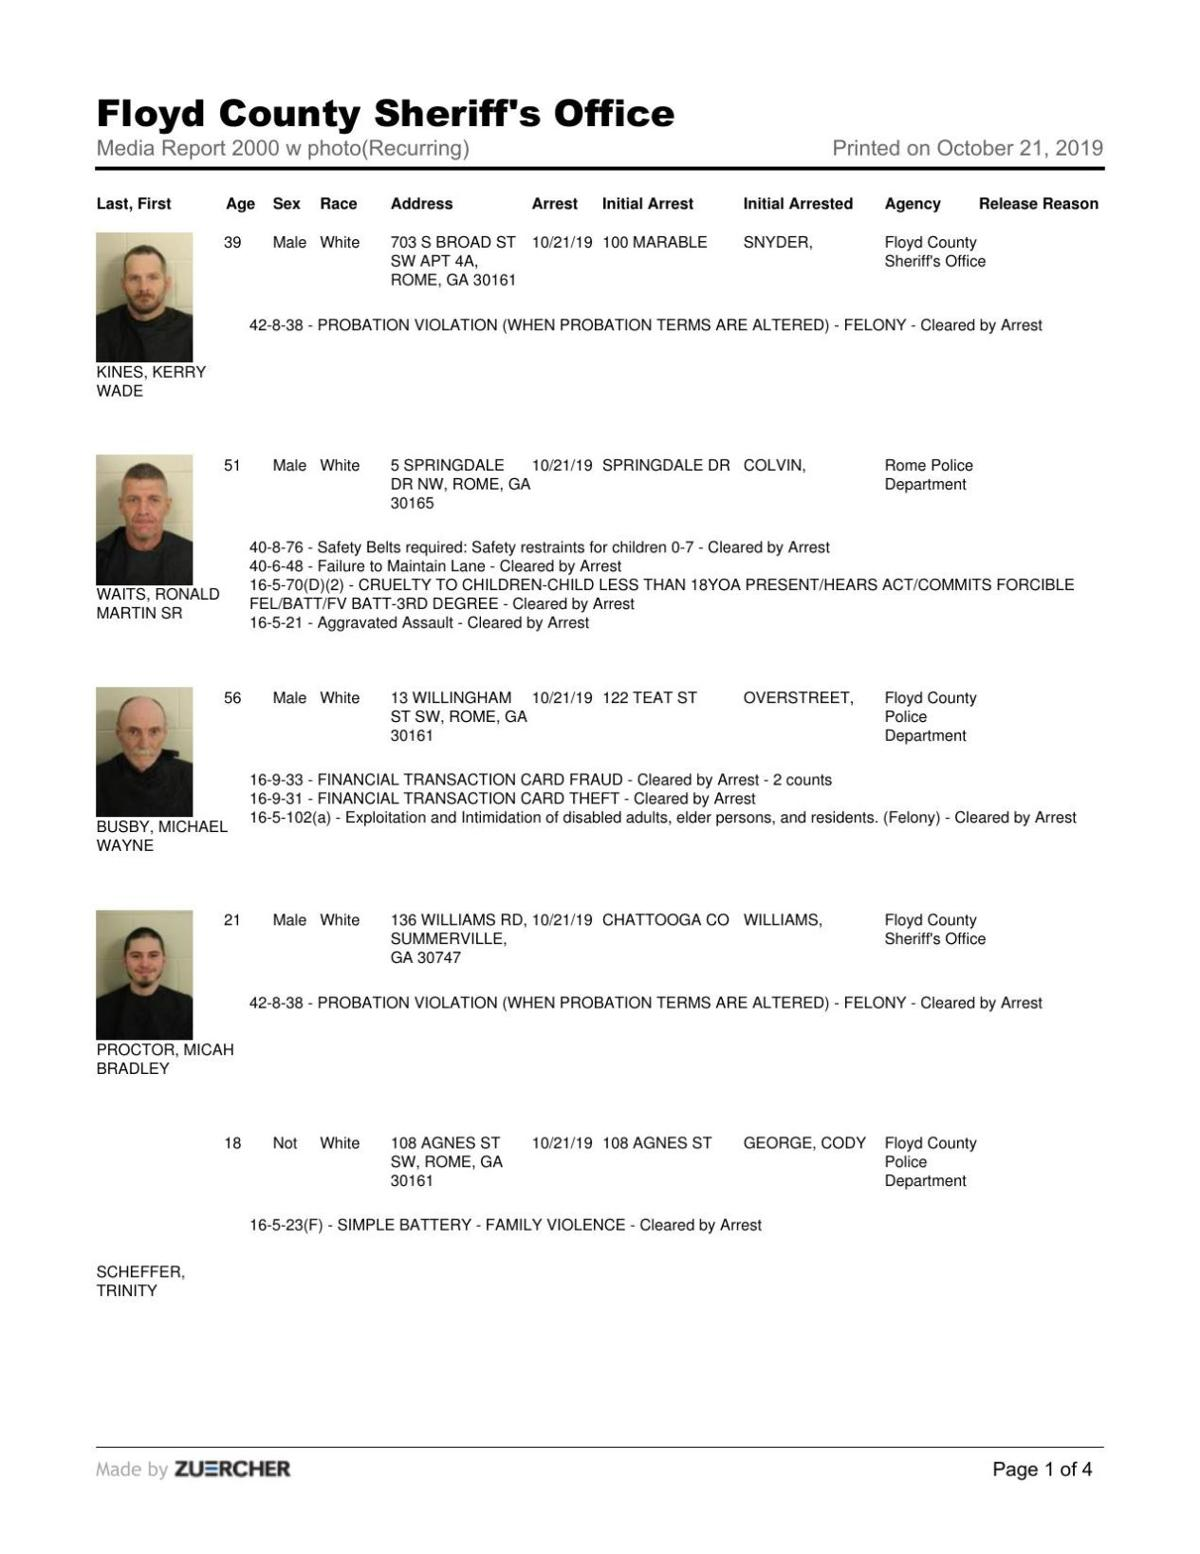 Floyd County Jail report for Monday, Oct. 21 - 8 p.m.